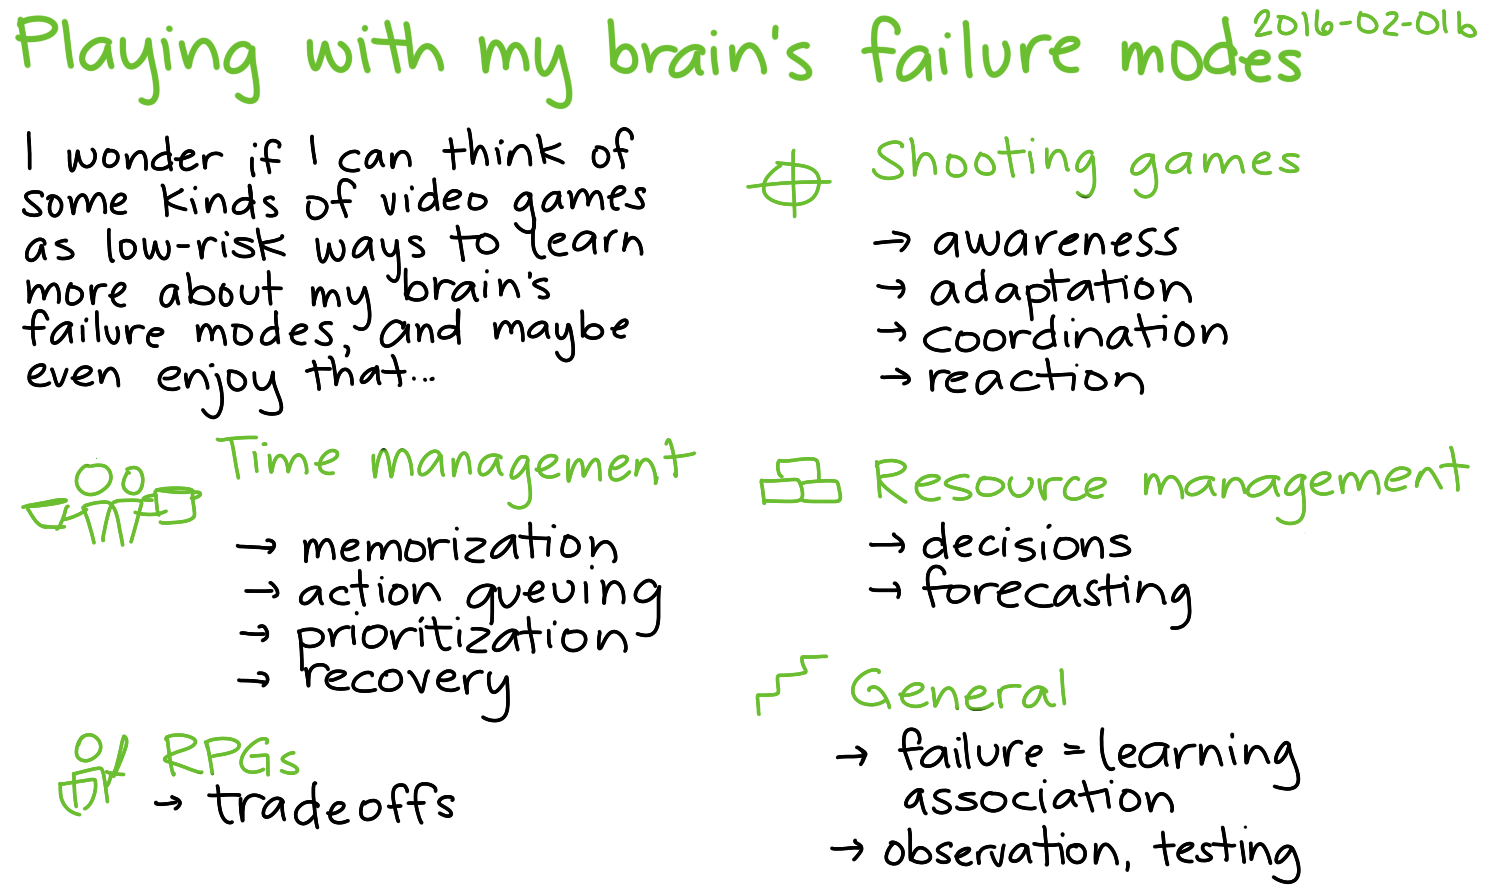 2016-02-01b Playing with my brain's failure modes -- index card #gaming.png